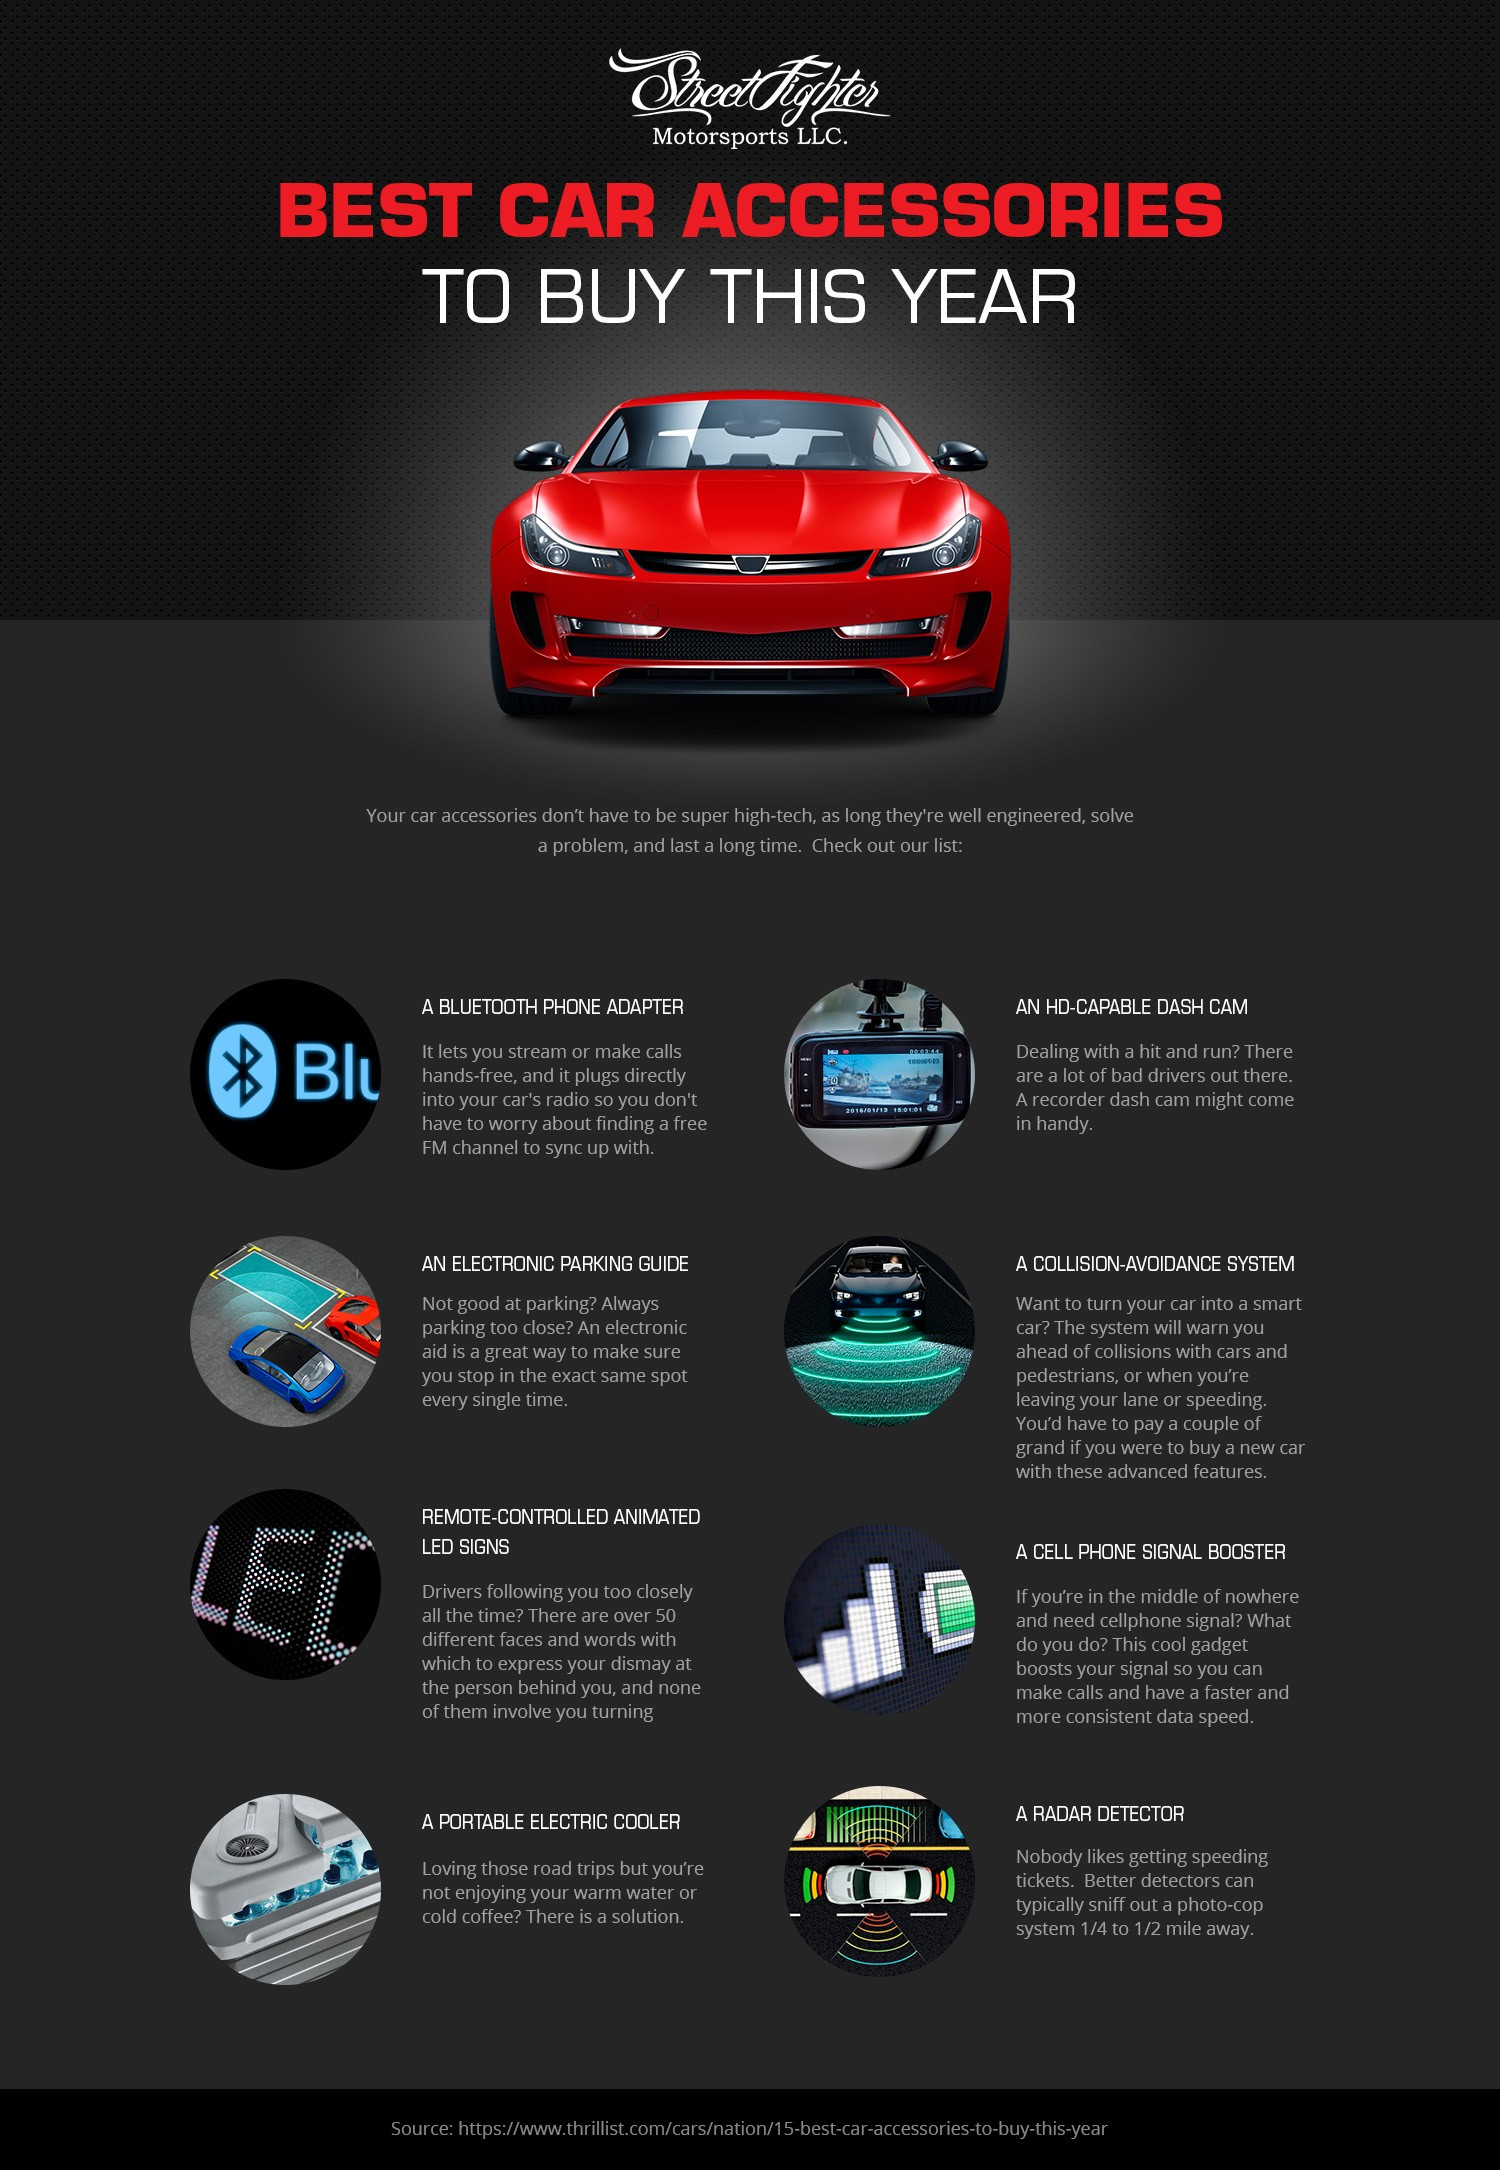 Best-Car-Accessories-To-Buy-This-Year-Infographic